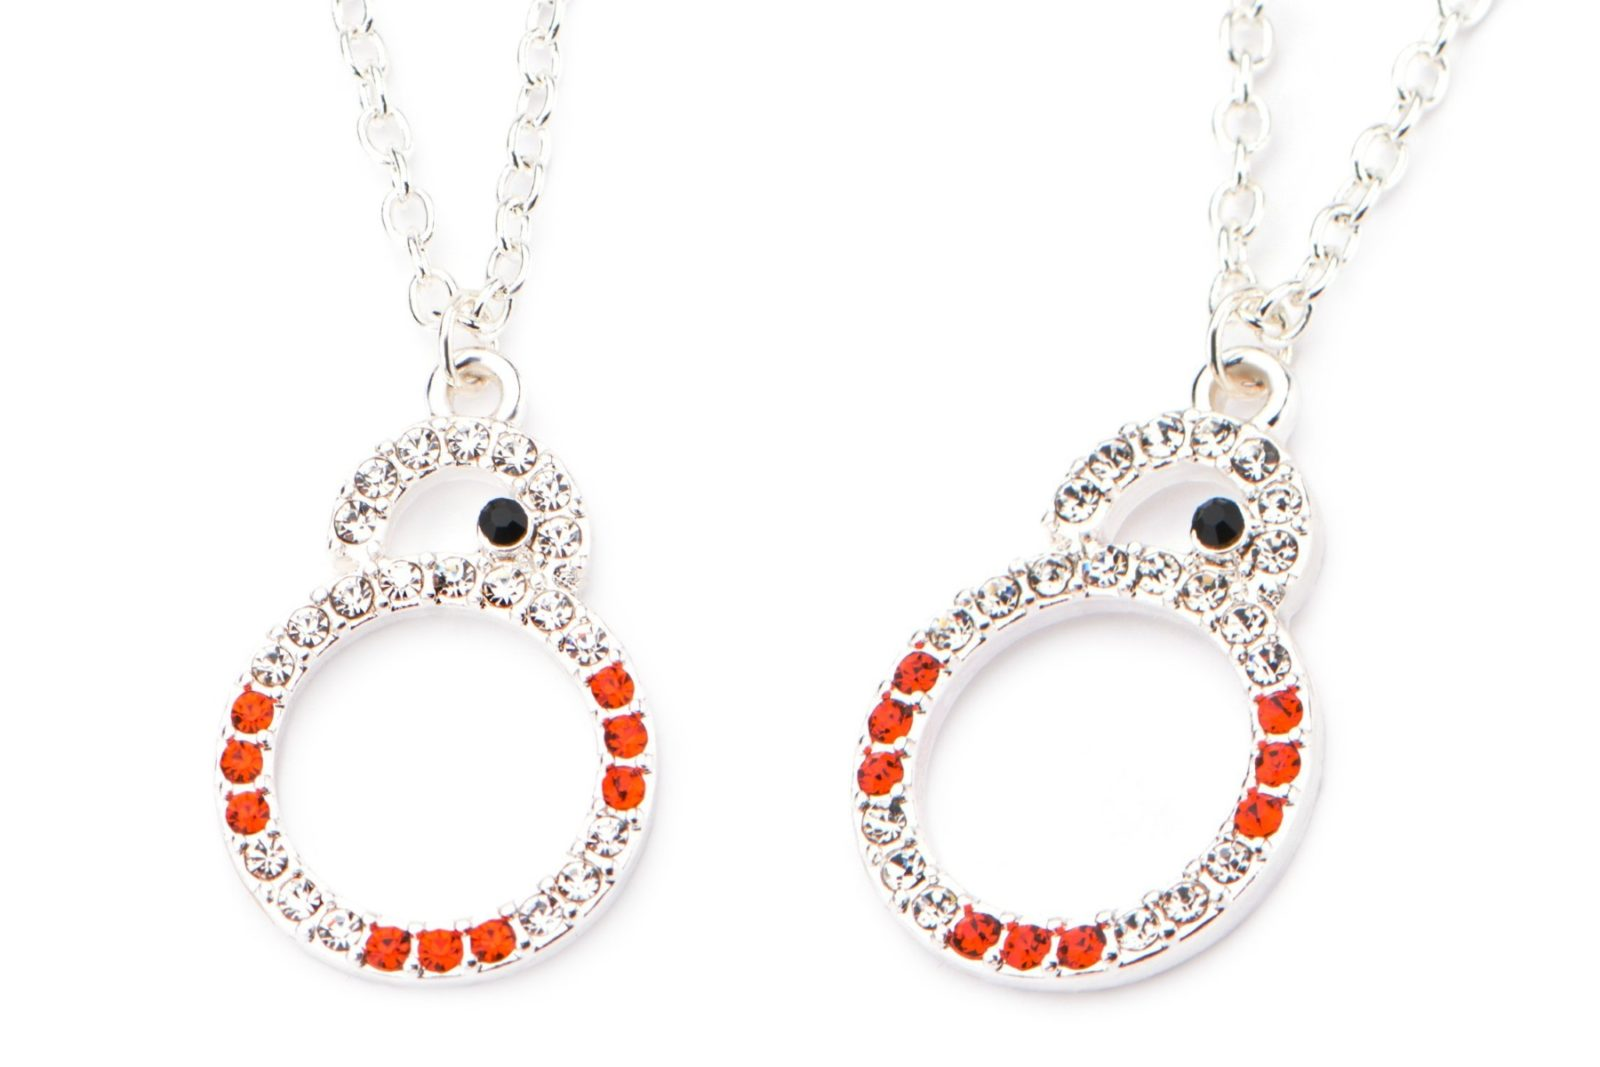 Star Wars Silver Plated BB-8 Crystal Necklace